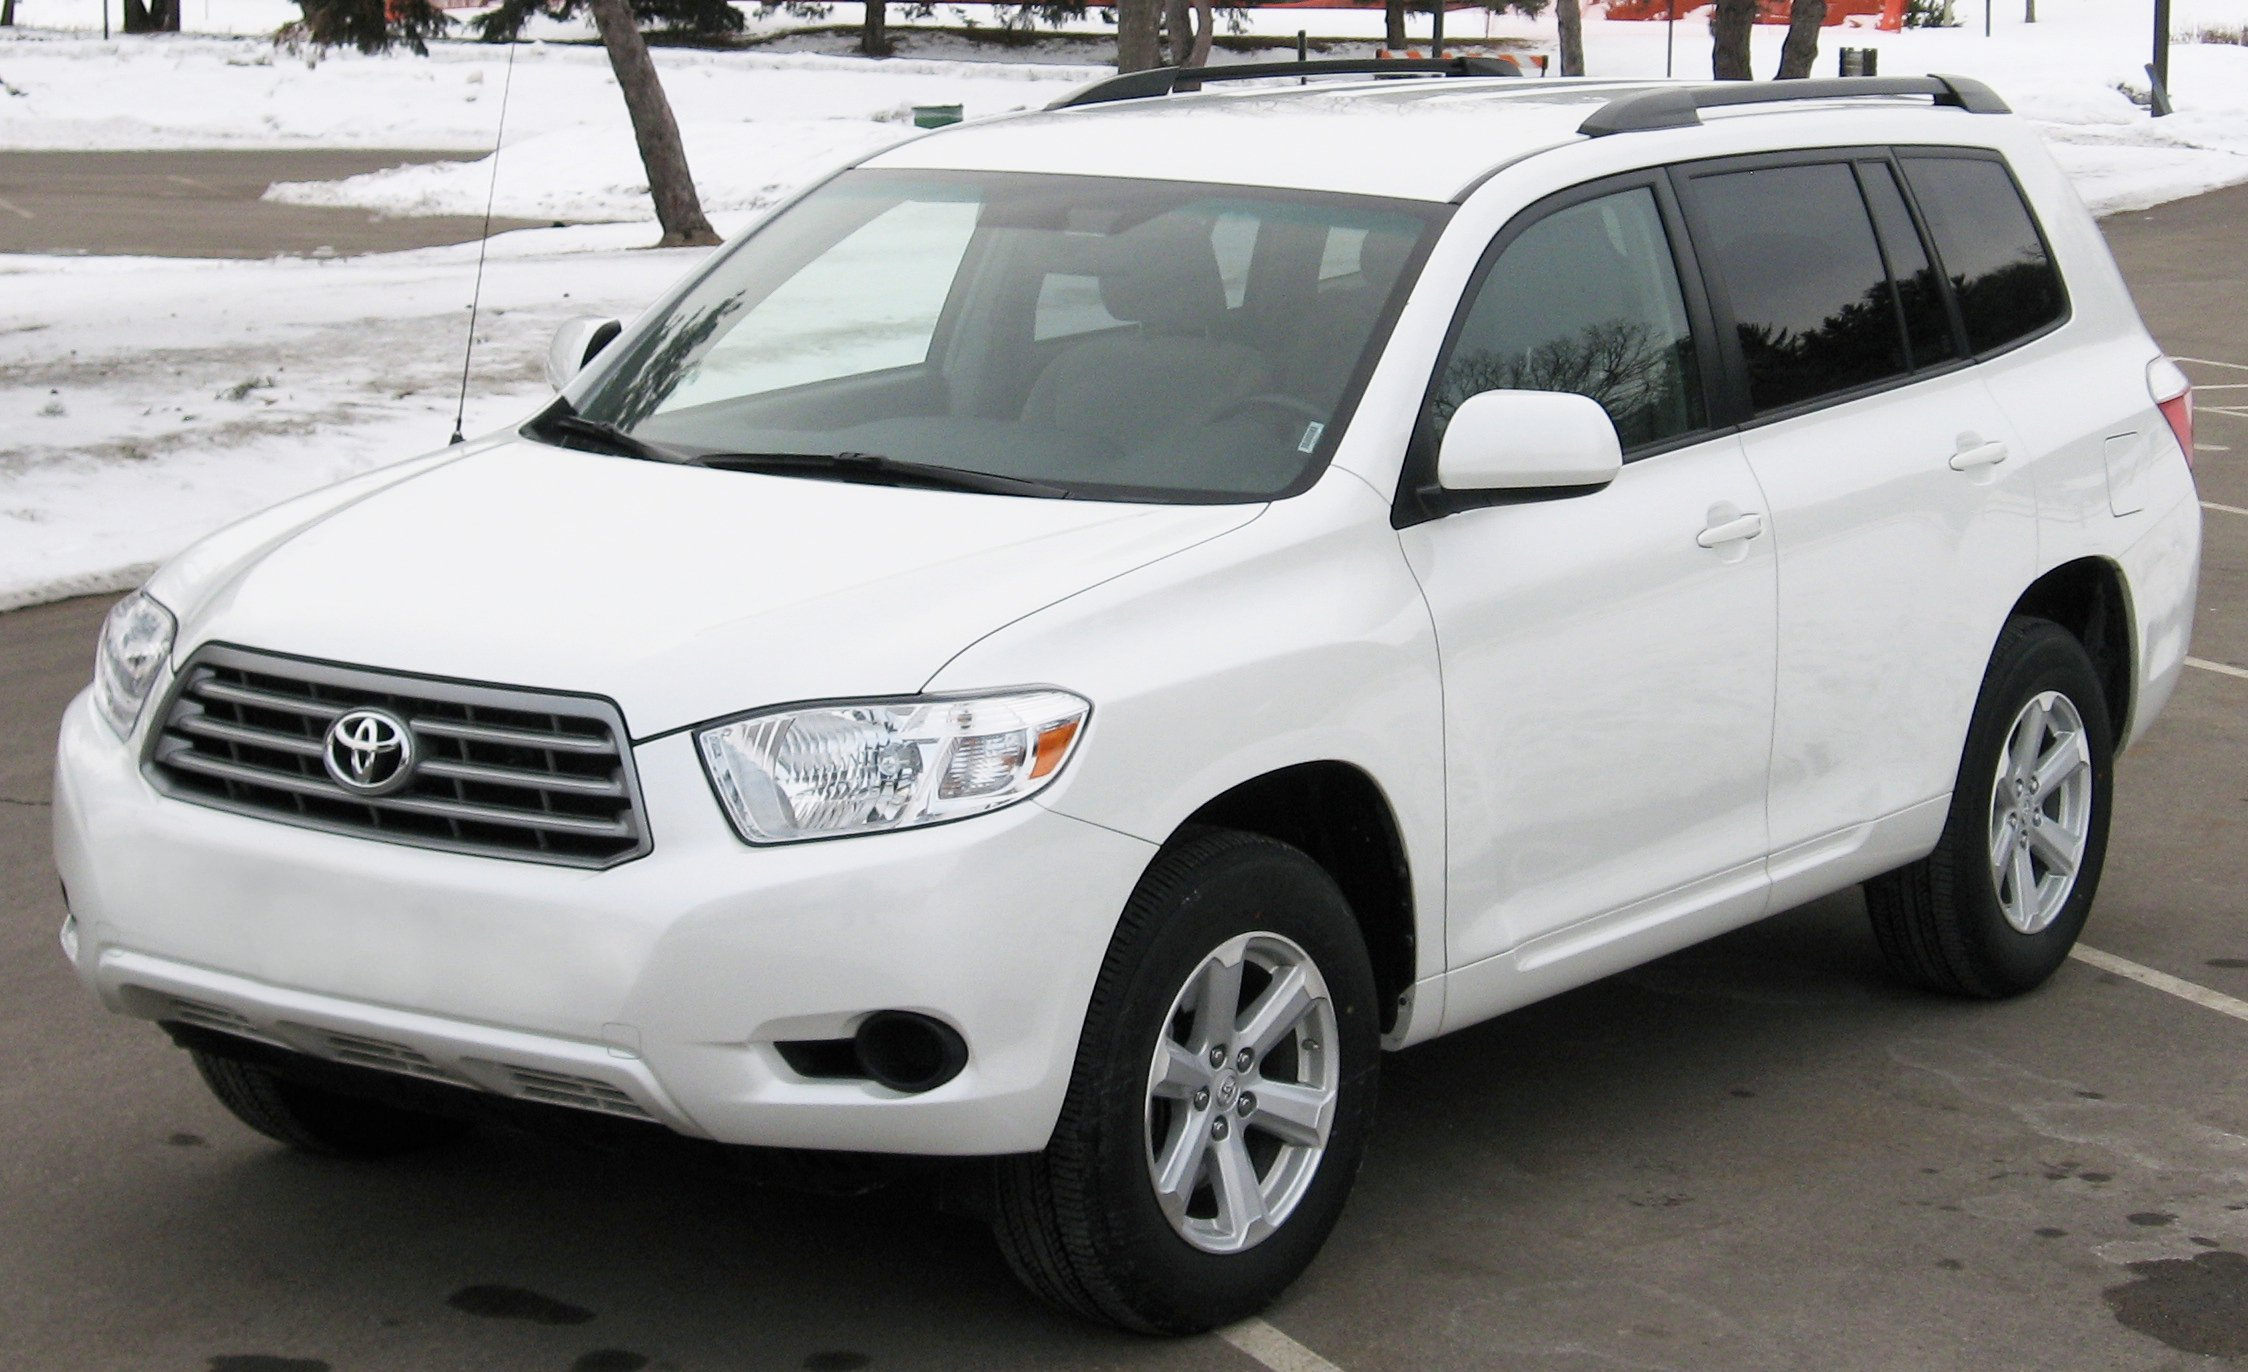 2010 toyota highlander ii pictures information and specs auto. Black Bedroom Furniture Sets. Home Design Ideas